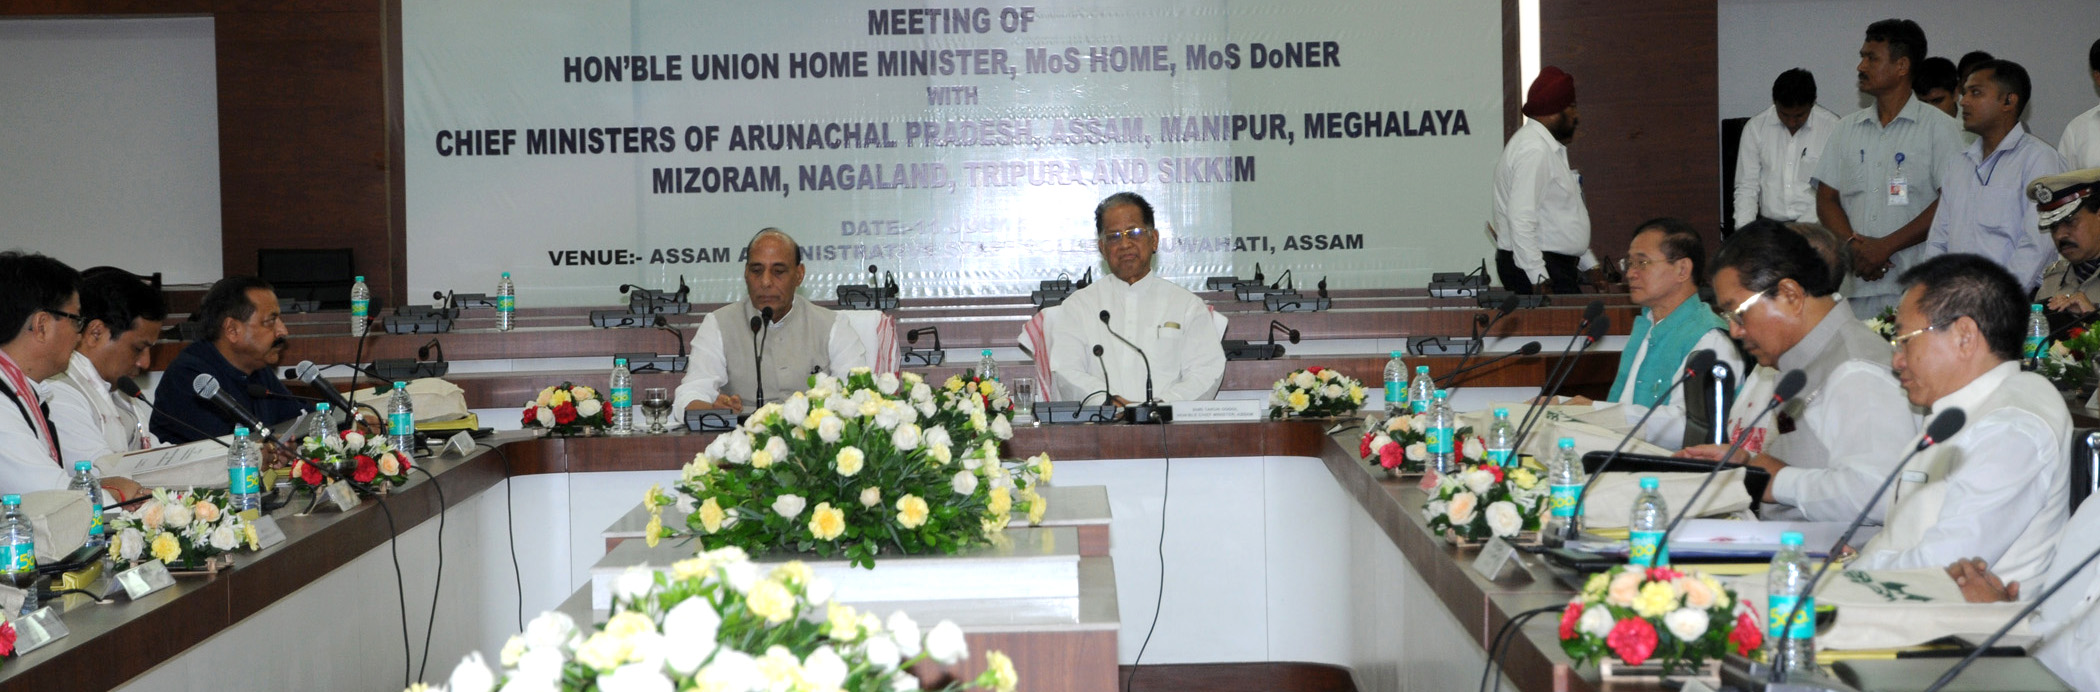 The Union Home Minister, Shri Rajnath Singh chairing the meeting of the Chief Ministers of Eight North Eastern States on Security & Development, in Guwahati on July 11, 2015. The Minister of State for Development of North Eastern Region (I/C), Prime Minister's Office, Personnel, Public Grievances & Pensions, Department of Atomic Energy, Department of Space, Dr. Jitendra Singh, the Minister of State for Home Affairs, Shri Kiren Rijiju and the Minister of State for Youth Affairs and Sports (Independent Charge), Shri Sarbananda Sonowal are also seen.